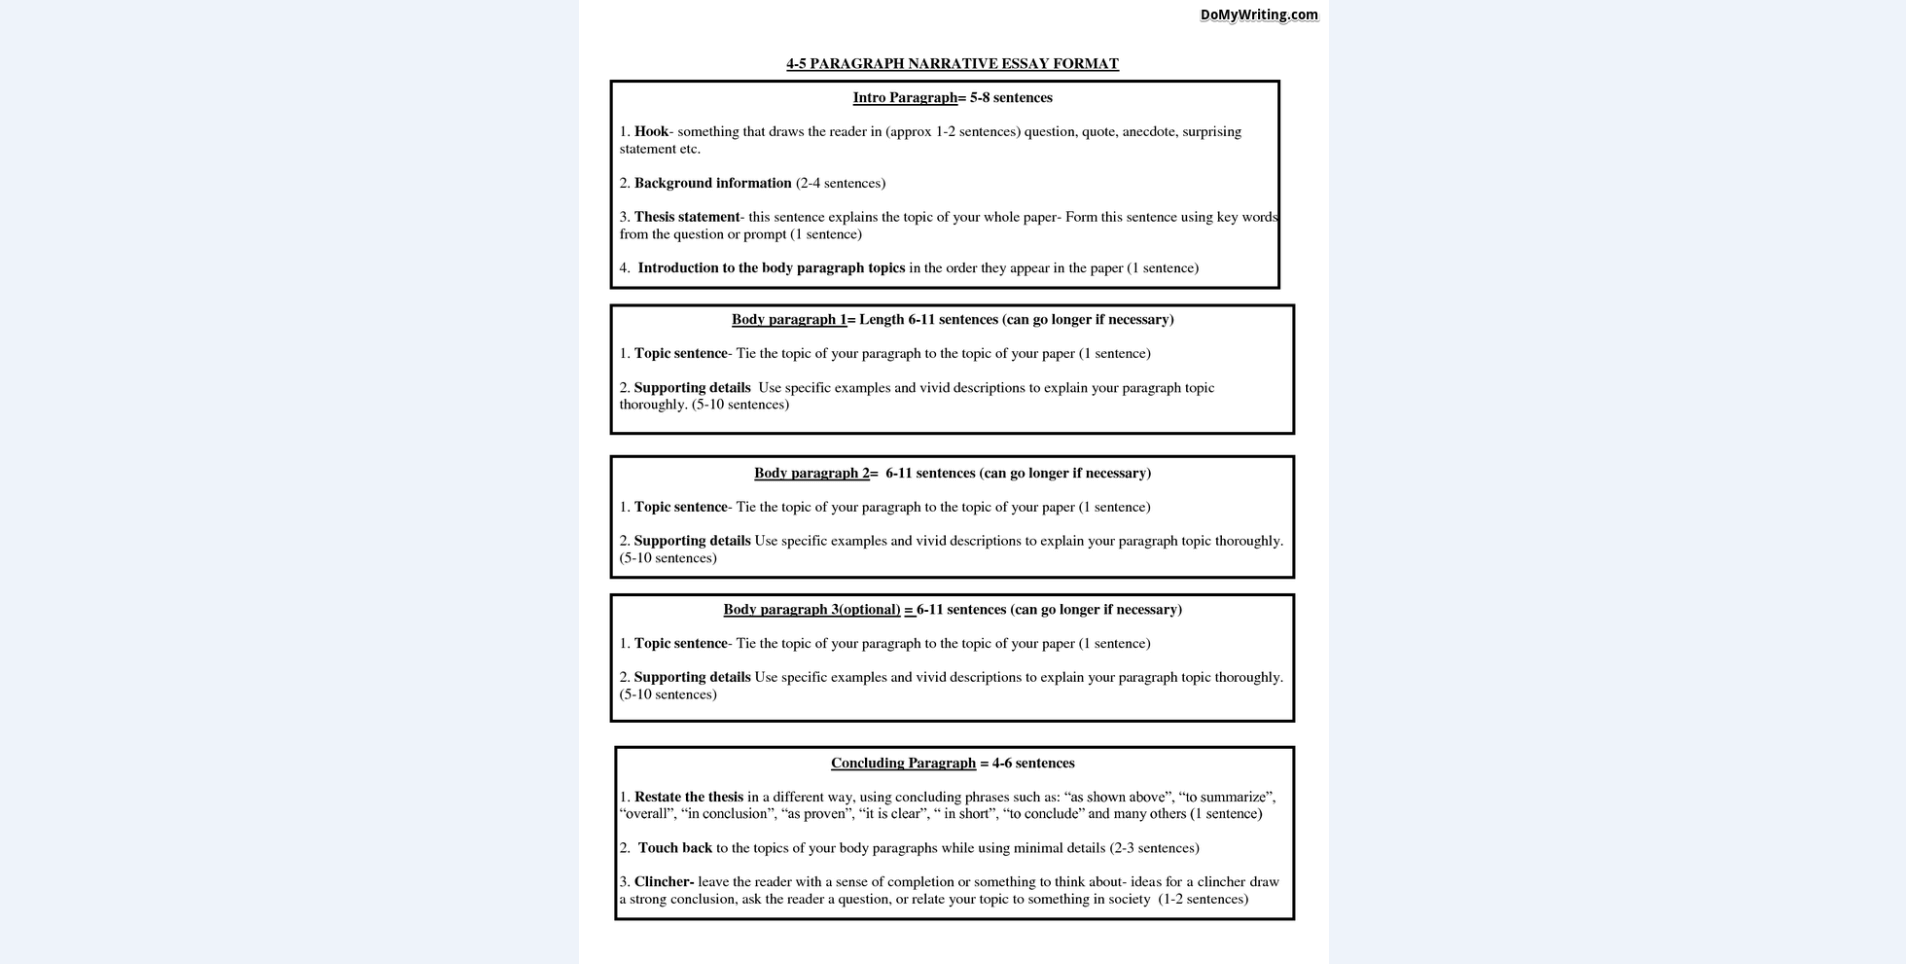 008 Narrative Essay Format Exceptional Rubric Graphic Organizer Outline Full